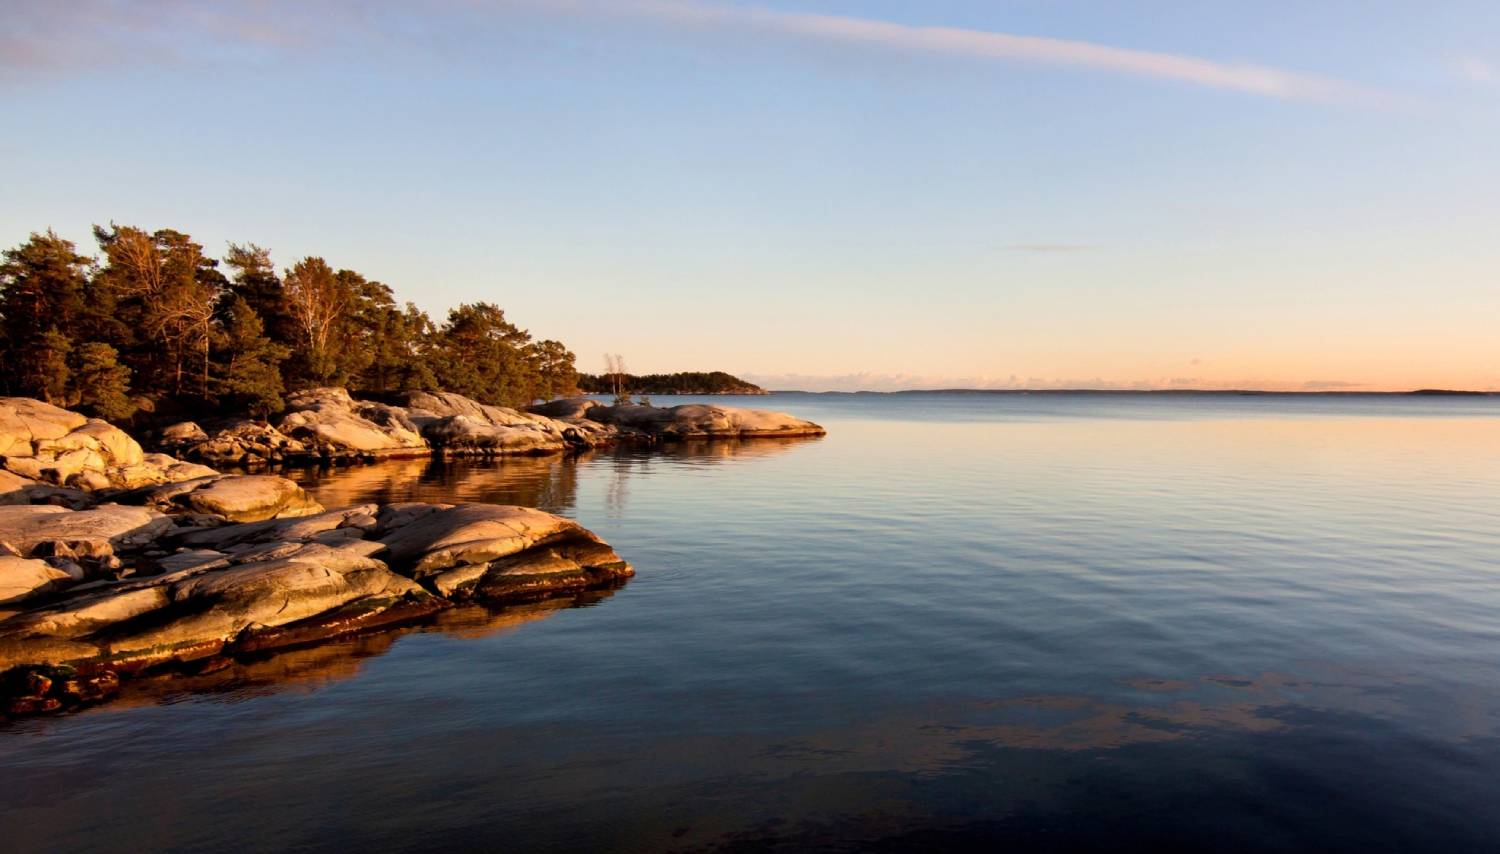 Stockholm Archipelago - Things To Do In Stockholm